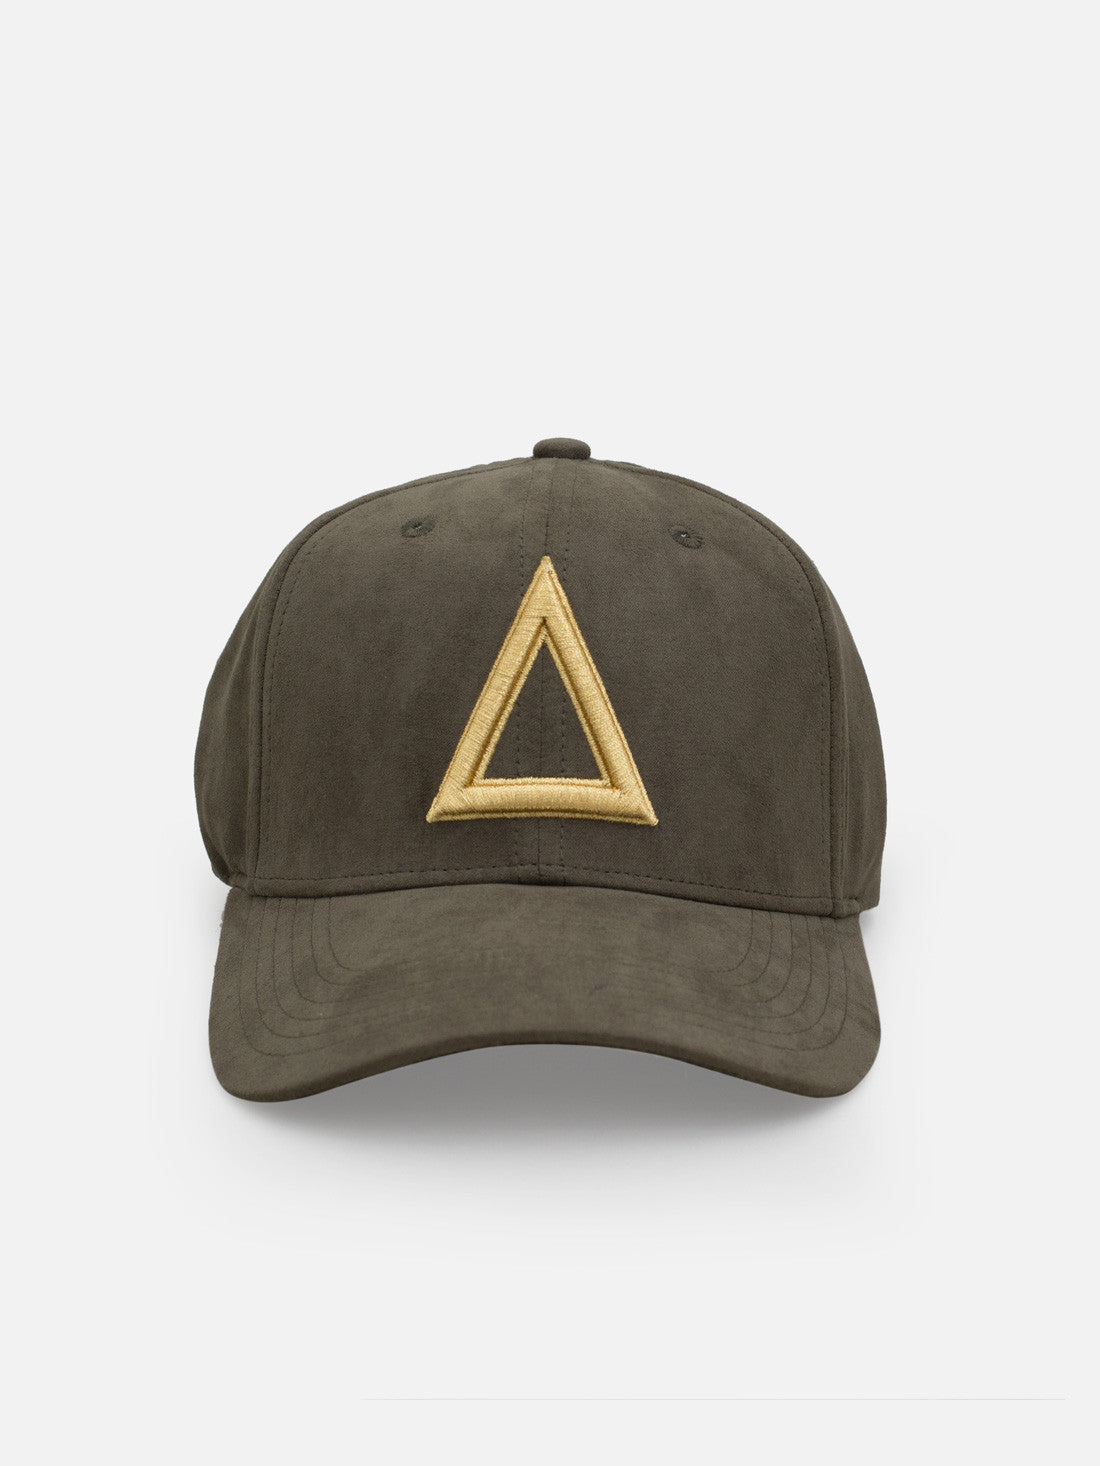 Suede Dad hat olive green - Gold tri